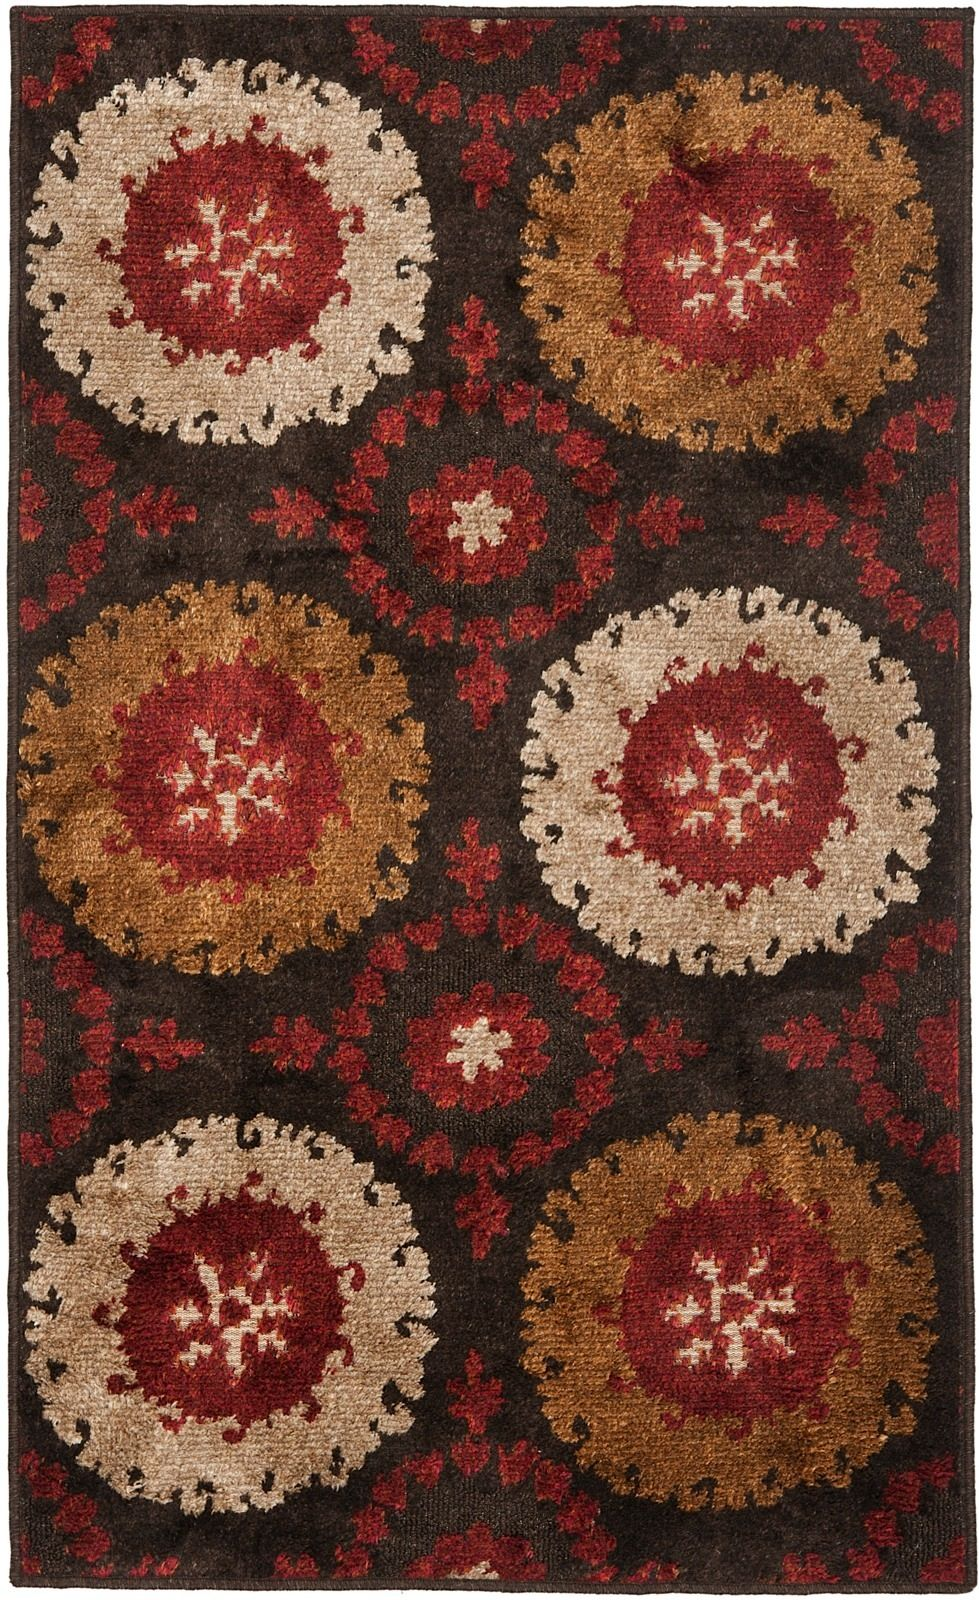 safavieh kashmir contemporary area rug collection